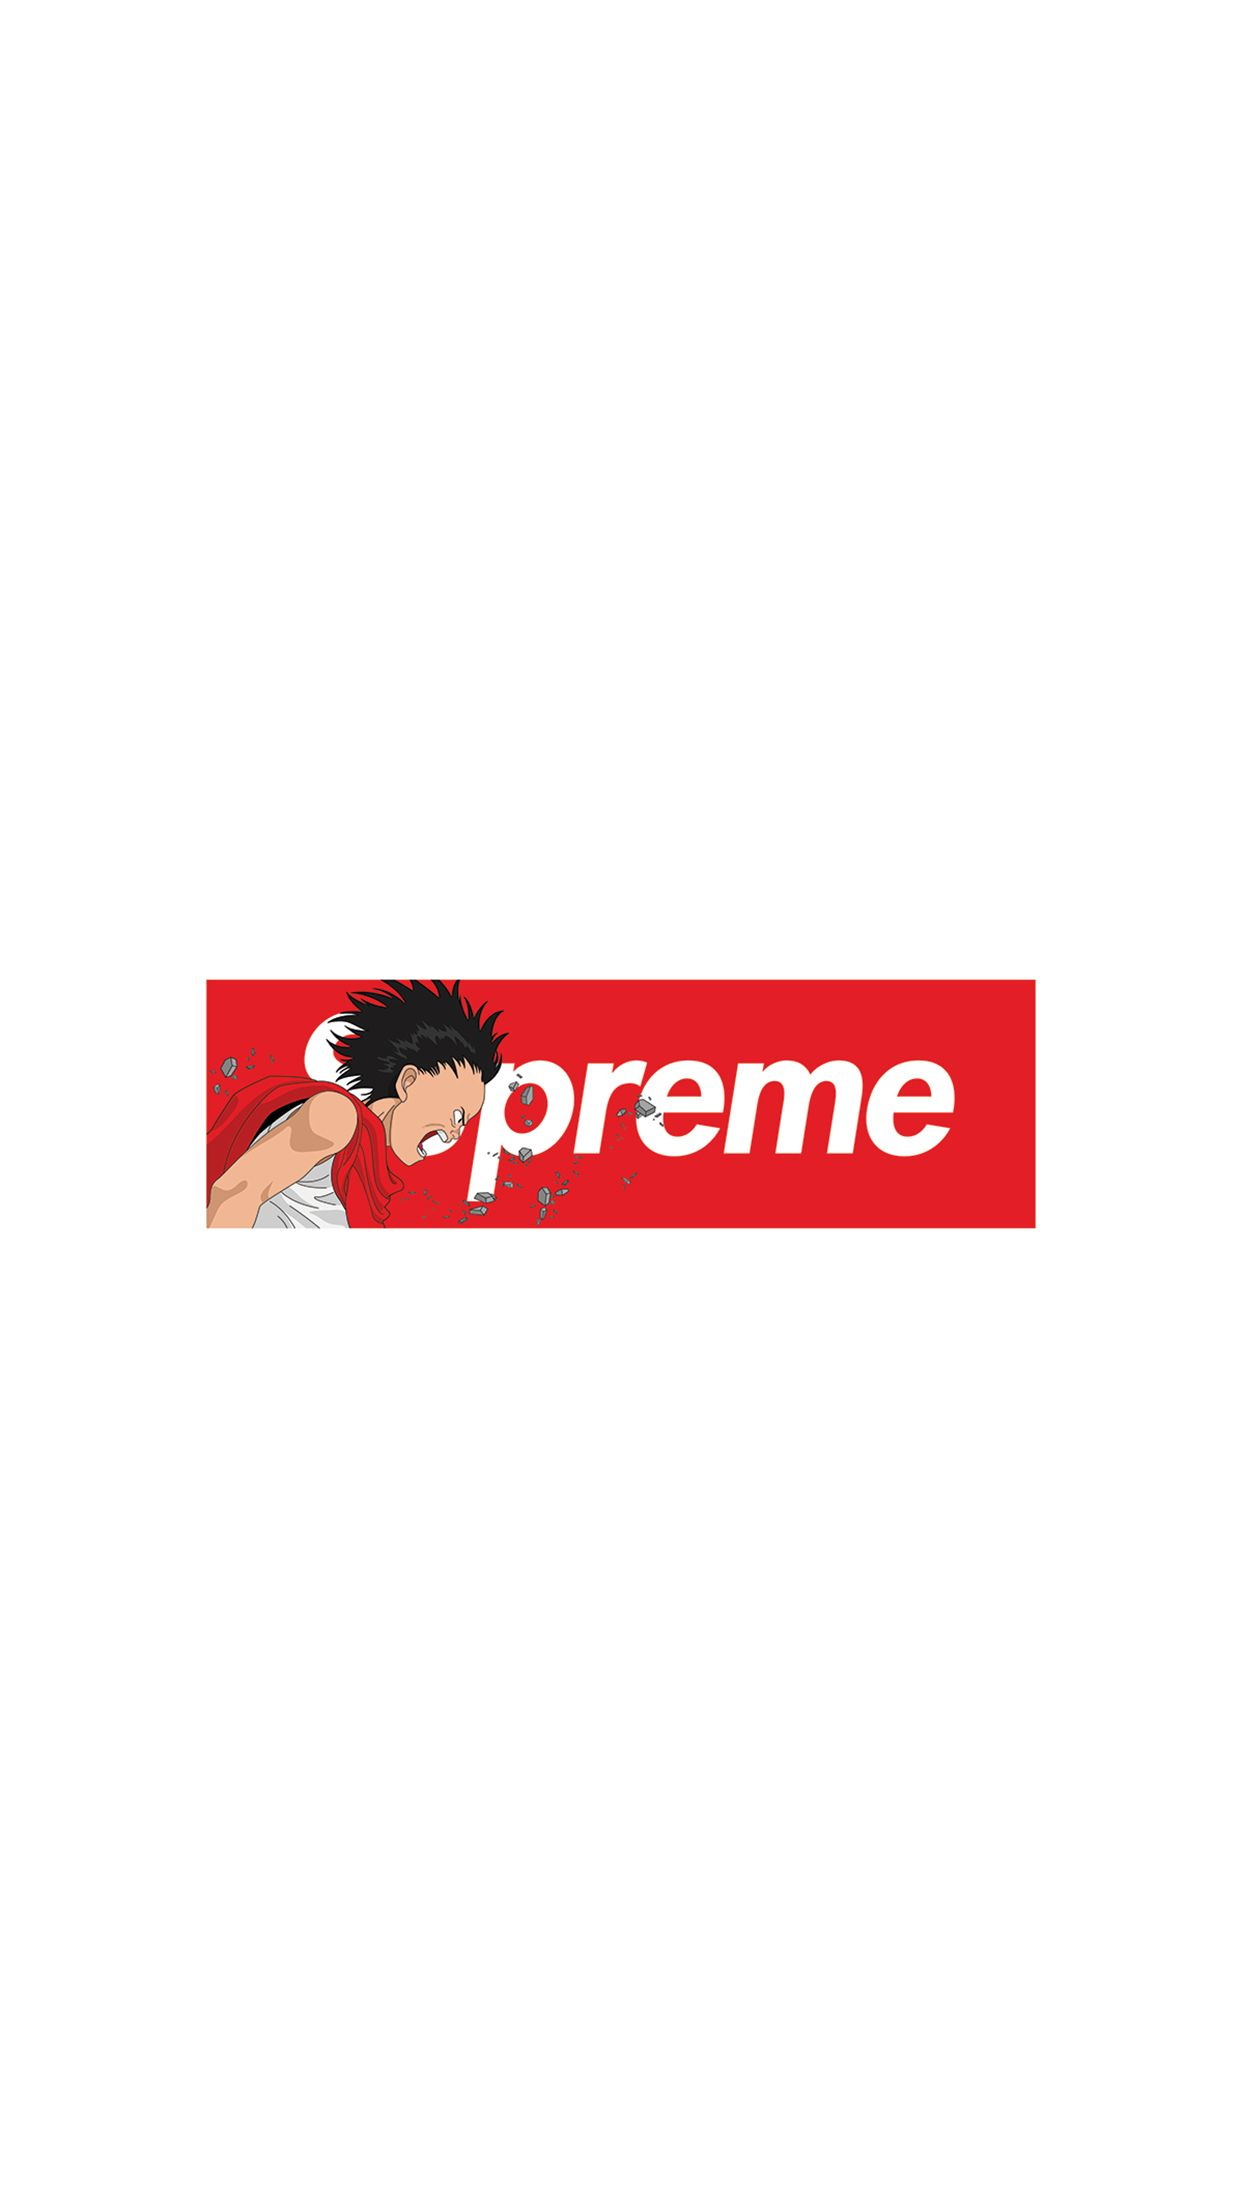 Supreme Wallpapers   Top Supreme Backgrounds   WallpaperAccess 1242x2208